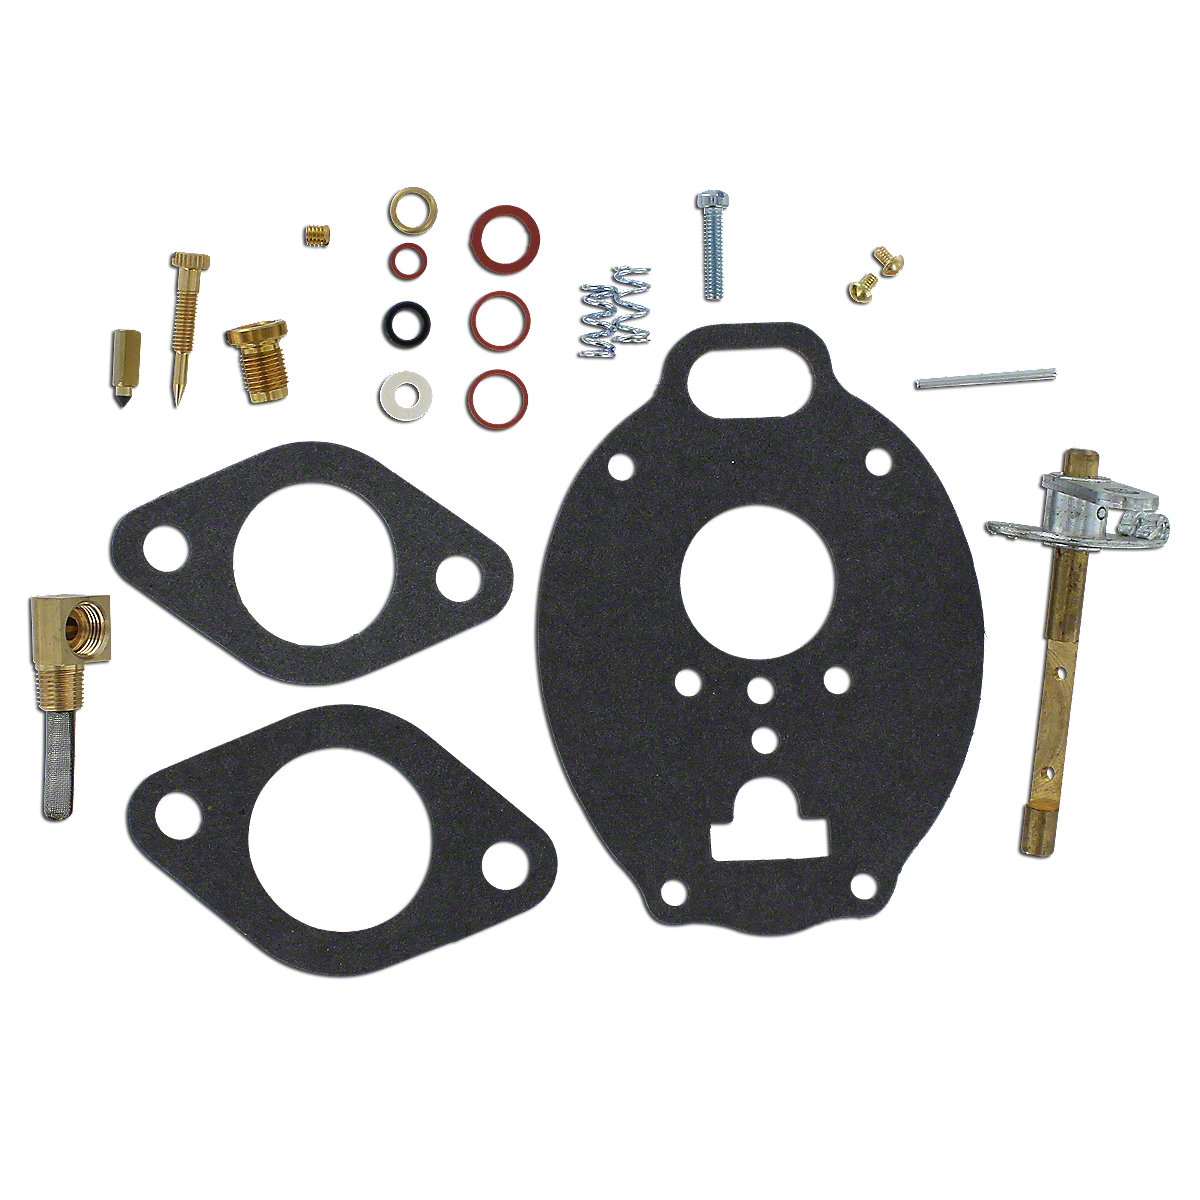 Marvel Schebler Basic Carburetor Kit For Massey Ferguson: 65, 165, 3165.